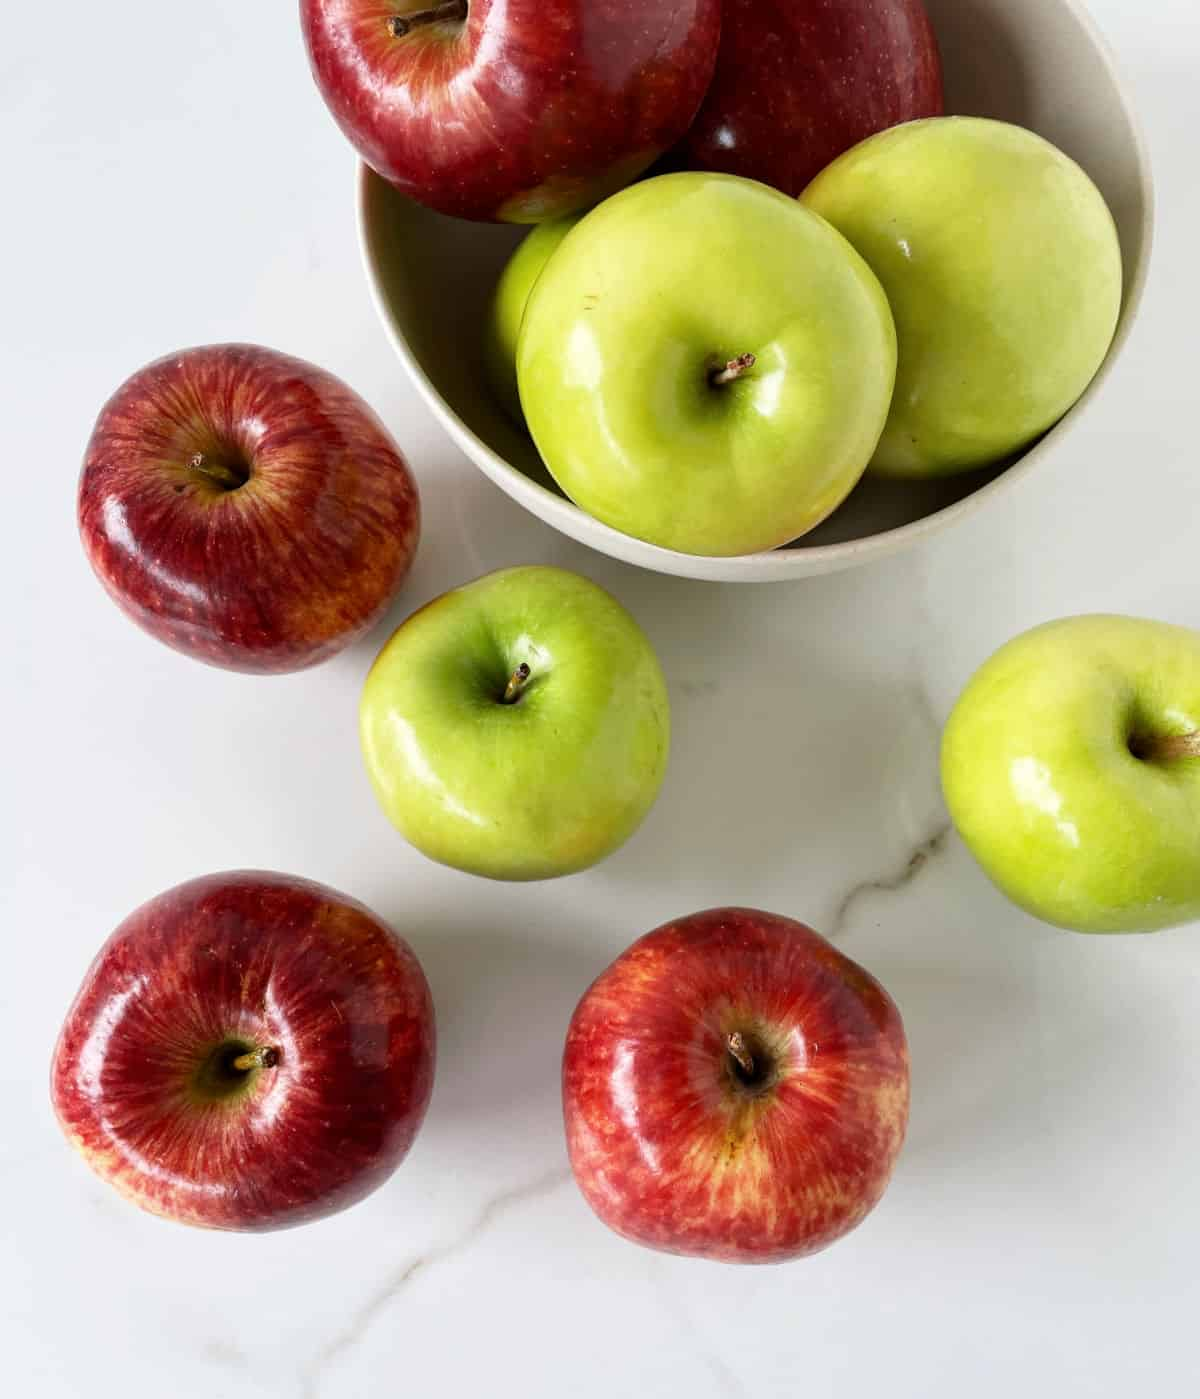 Green and red apples in bowl on white marble